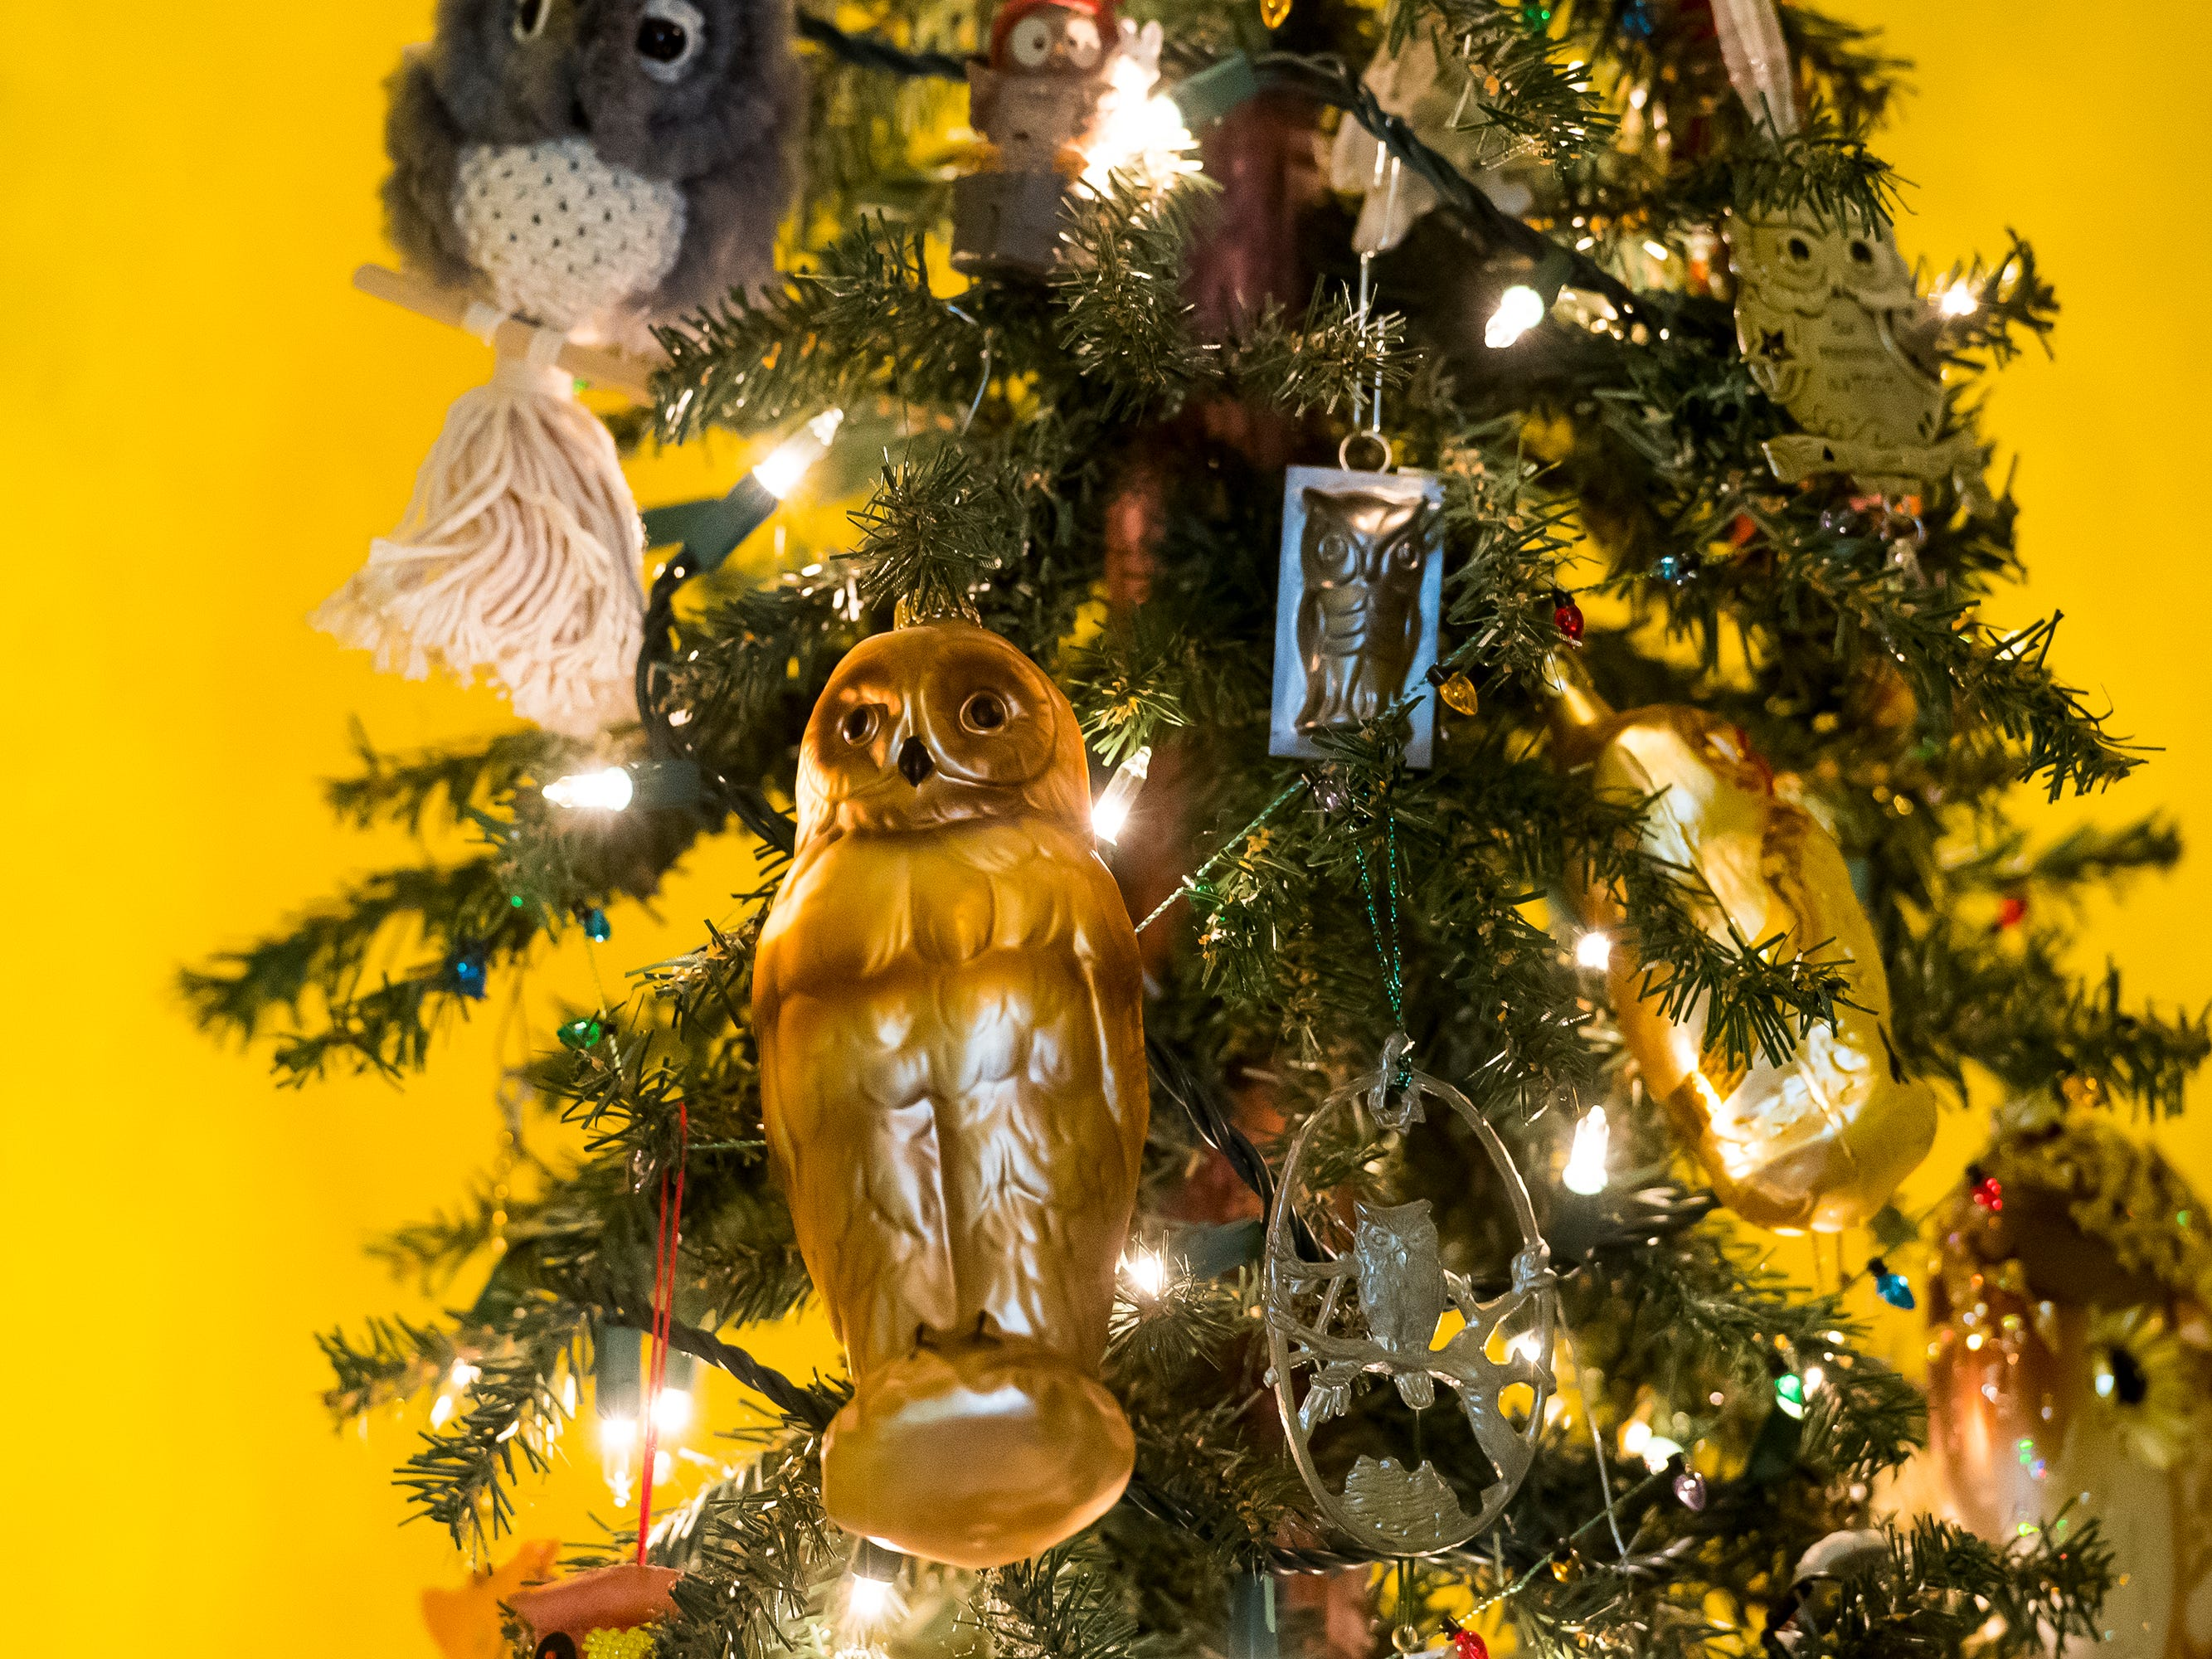 Linda Lohr, Bill Warehime's former secretary, decorated this tree at the Warehime-Myers Mansion in his memory. Warehime, who passed away in 2008, and Lohr shared a love of owls.